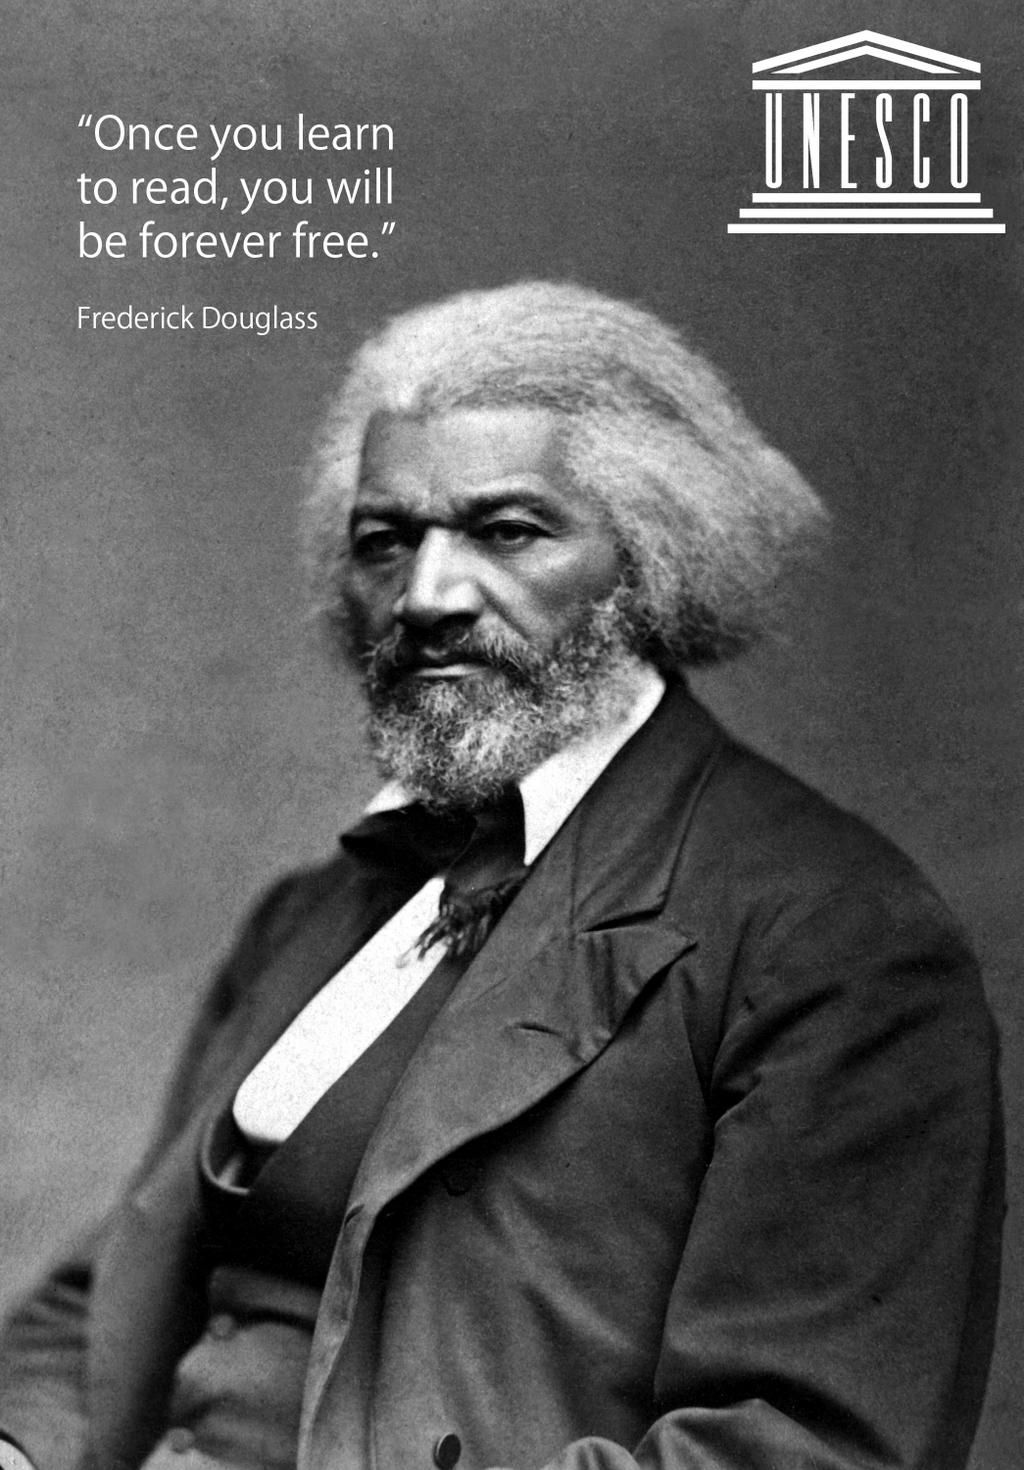 frederick douglass once you learn to you will be forever frederick douglass once you learn to you will be forever